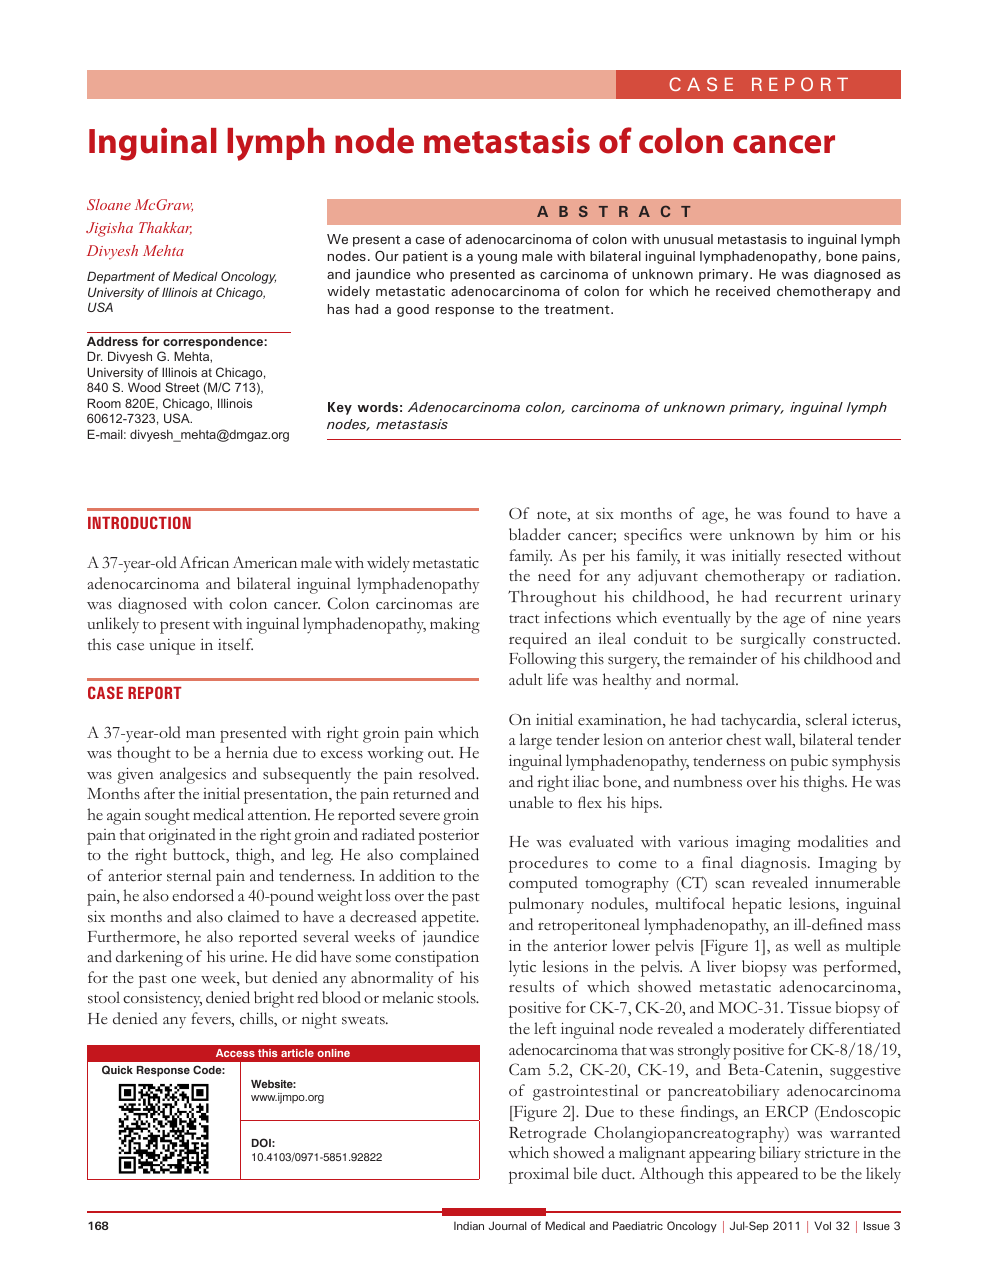 Inguinal lymph node metastasis of colon cancer – topic of research